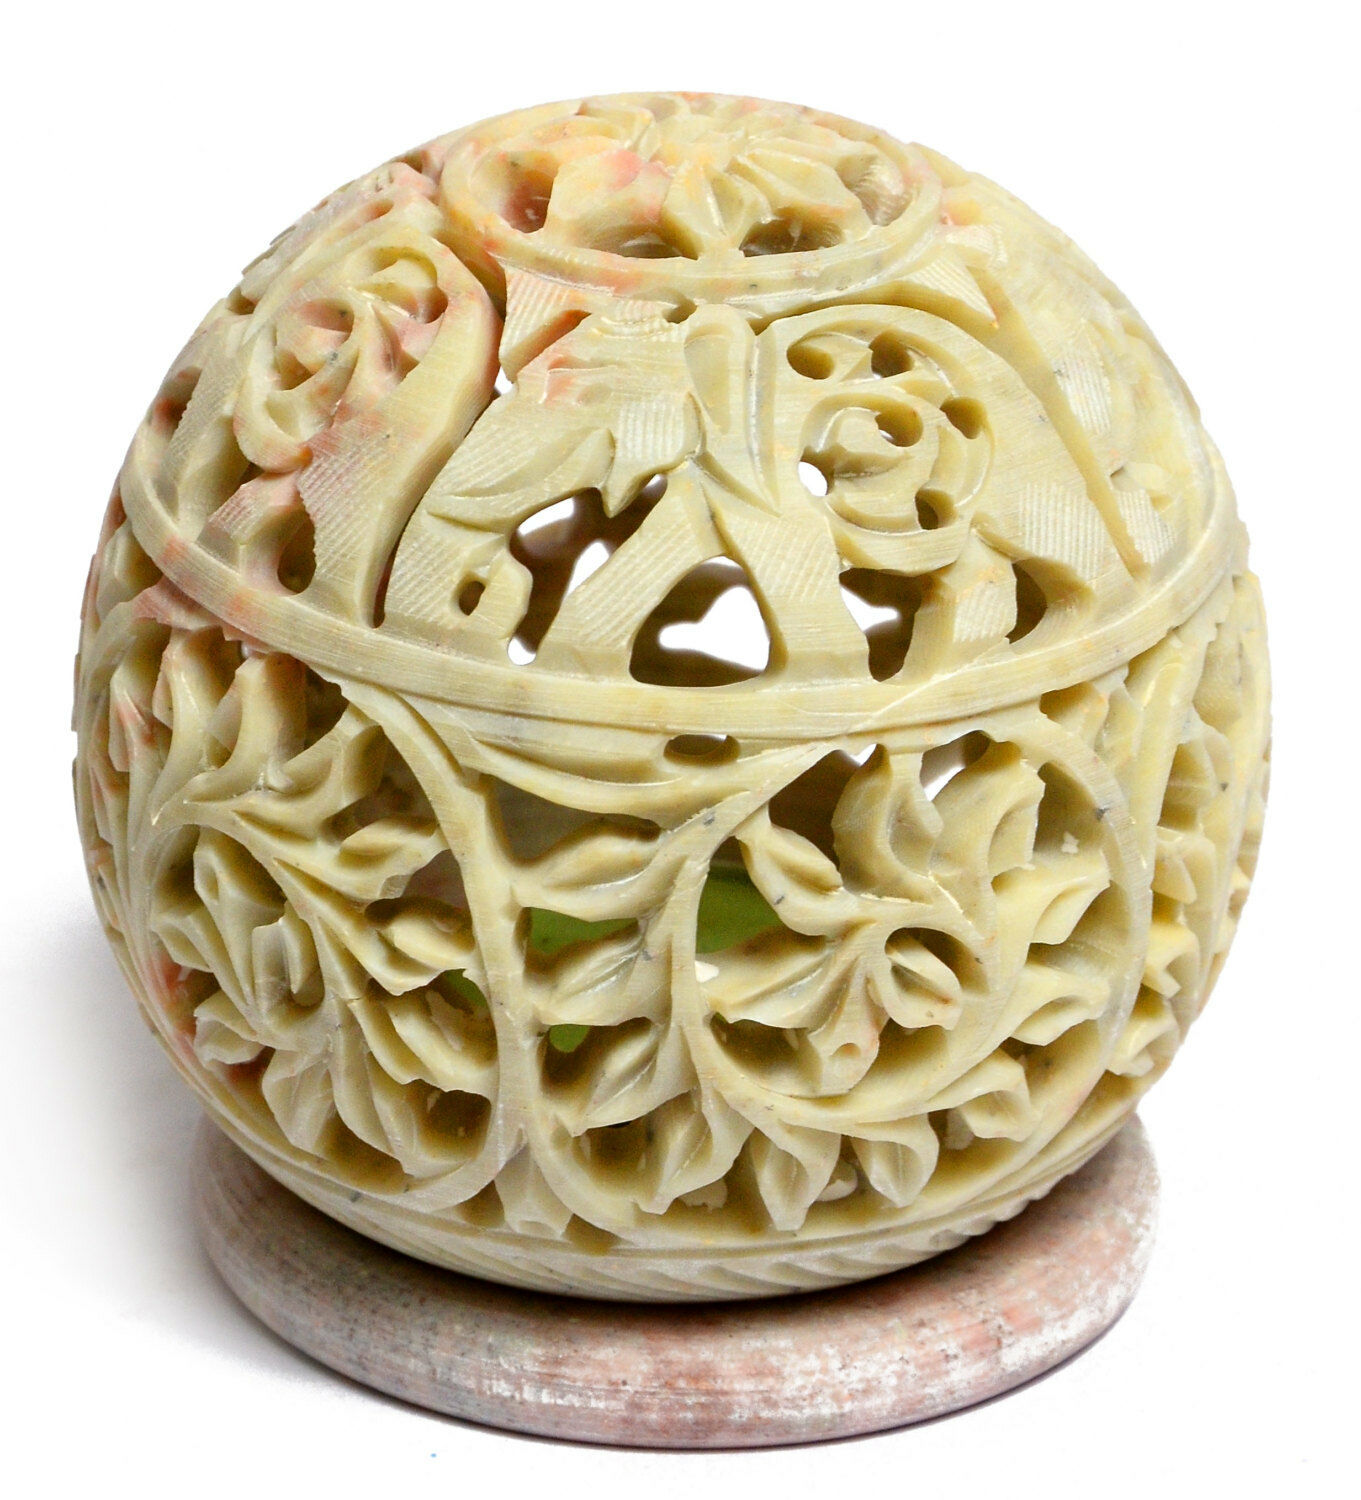 3.5 x 4  Marble Soapstone Candle Holder Hand Carved Design Round Handmade H656